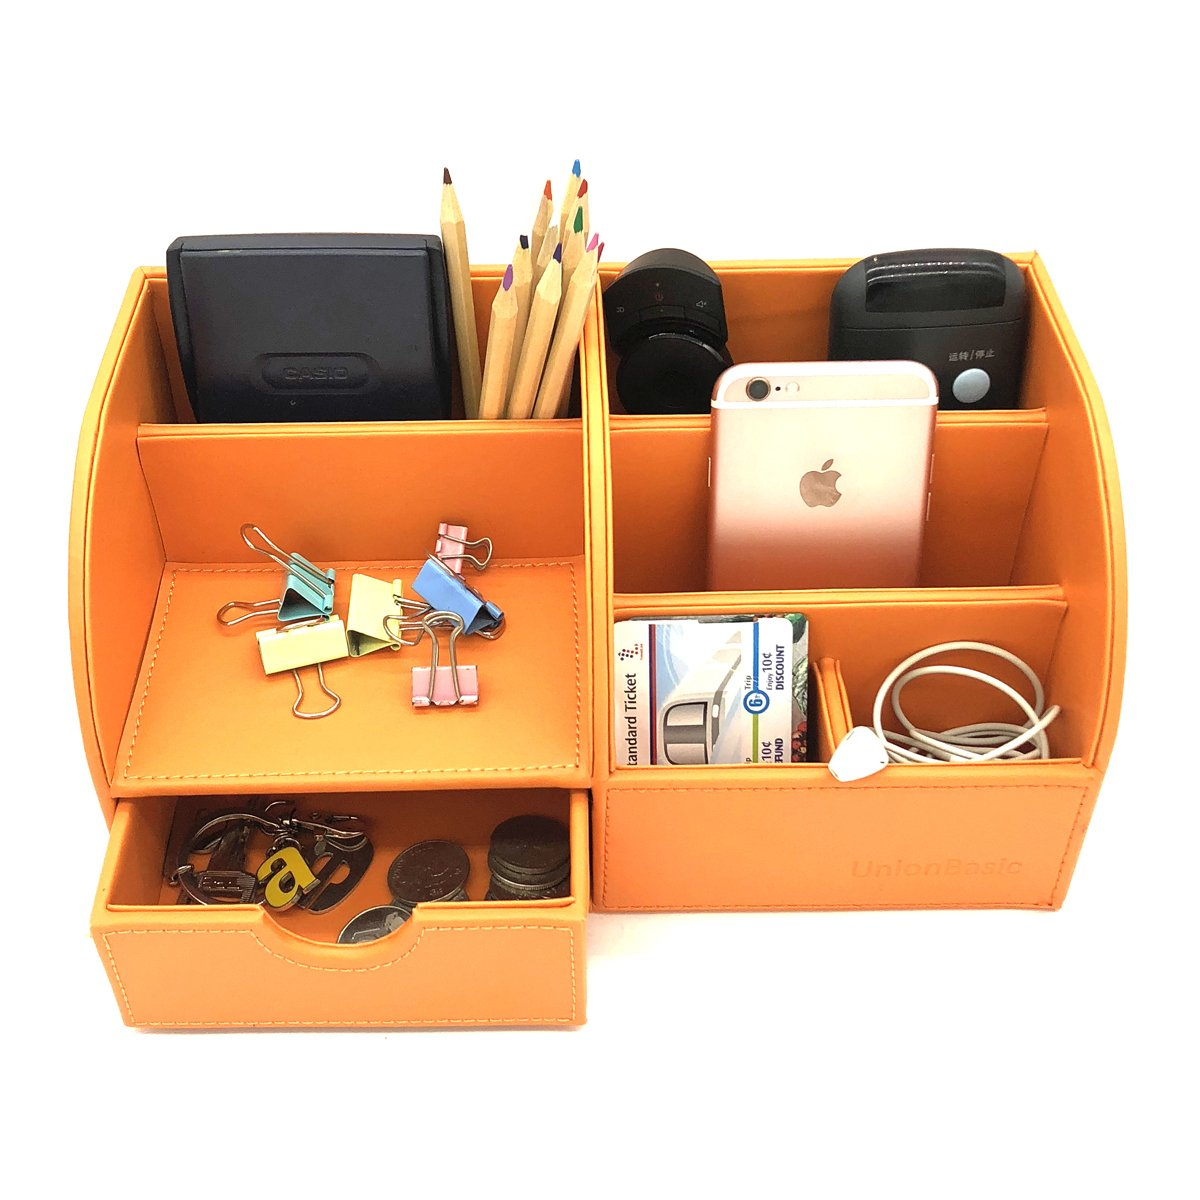 UnionBasic Office Desk Organizer - Multifunctional PU Leather Desktop Storage Box - Business Card/Pen/Pencil/Mobile Phone/Stationery Holder (Orange)